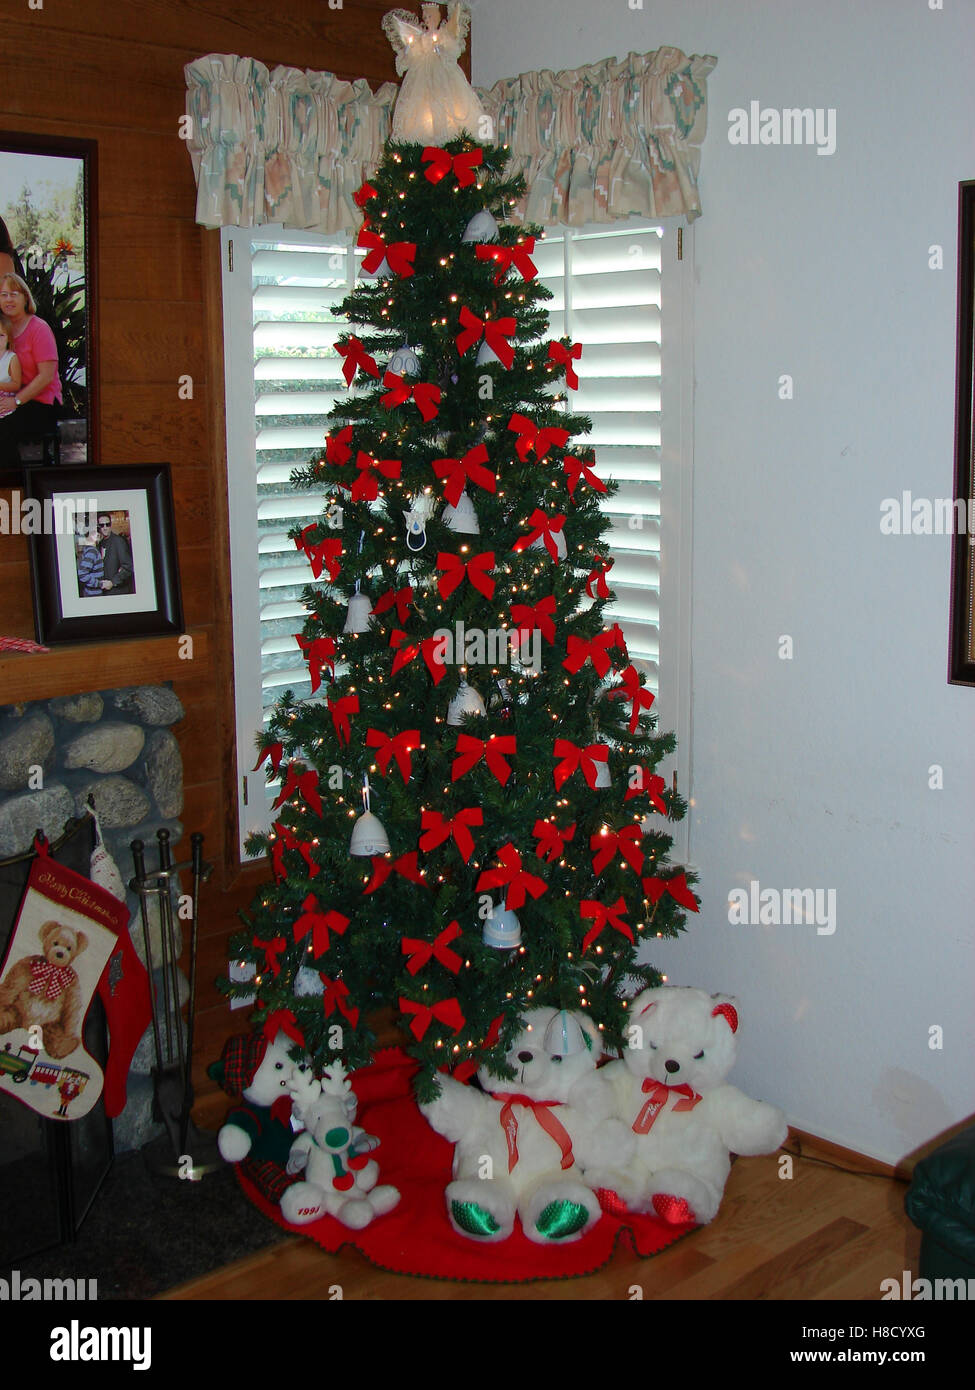 Christmas Tree with bright red bows and stuffed animals around it - Stock Image